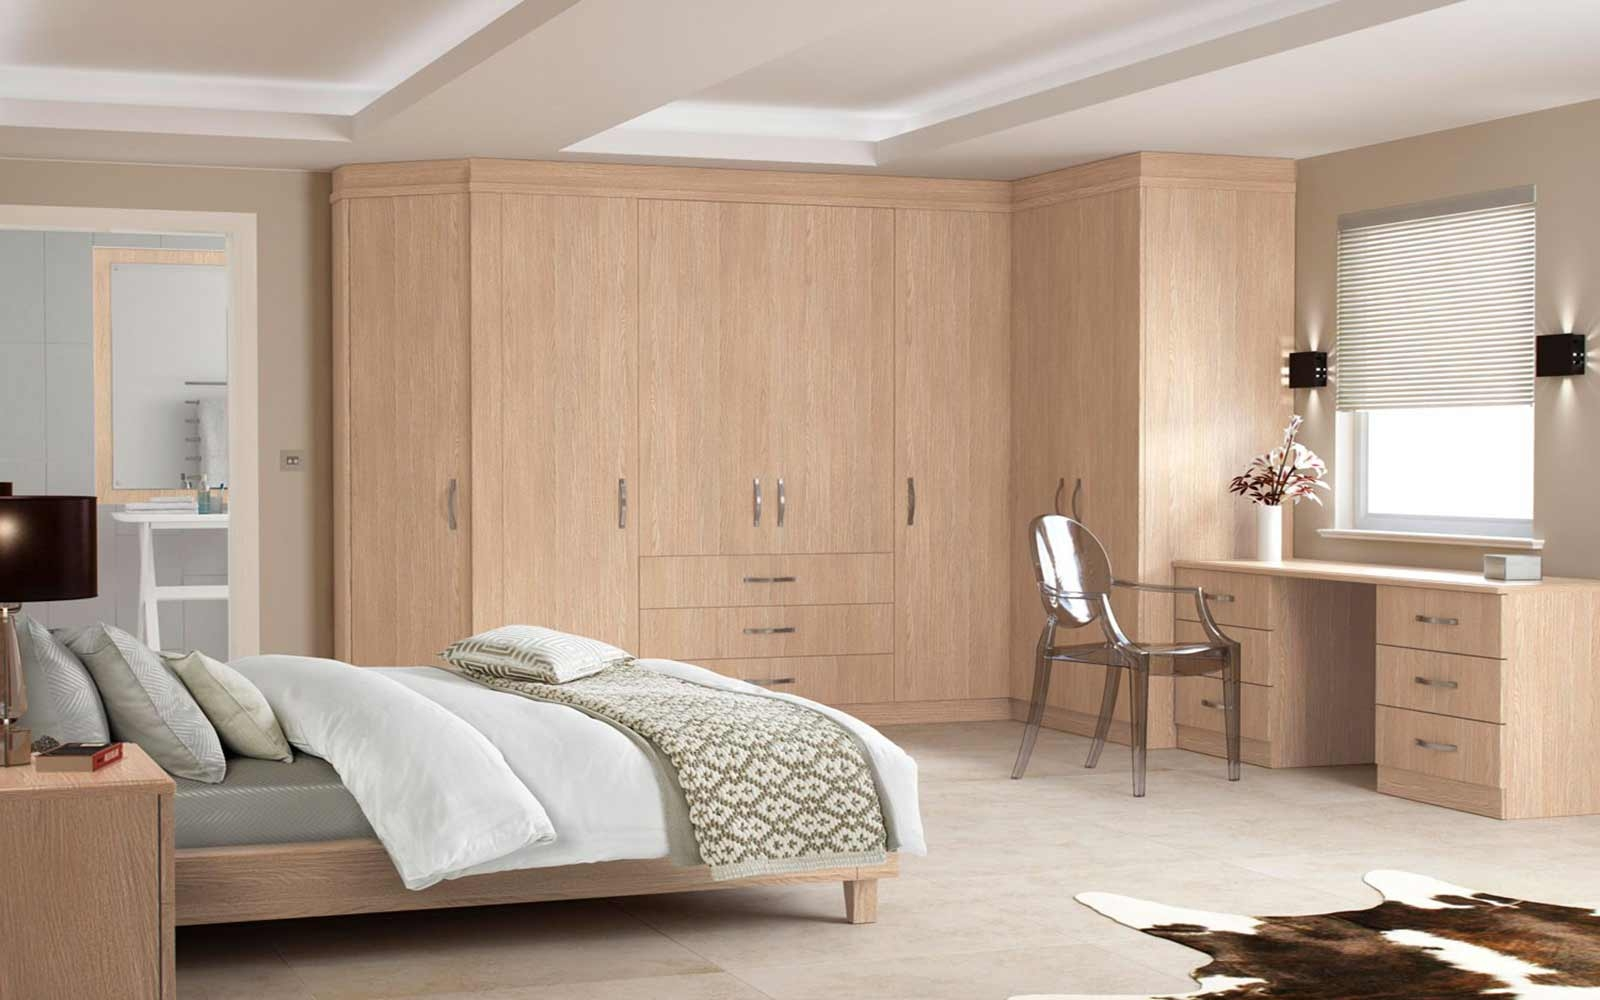 Bedroom Bespoke Built In Fitted Wardrobe Mirrored Dark Wood Throughout Solid Wood Fitted Wardrobes (View 14 of 15)